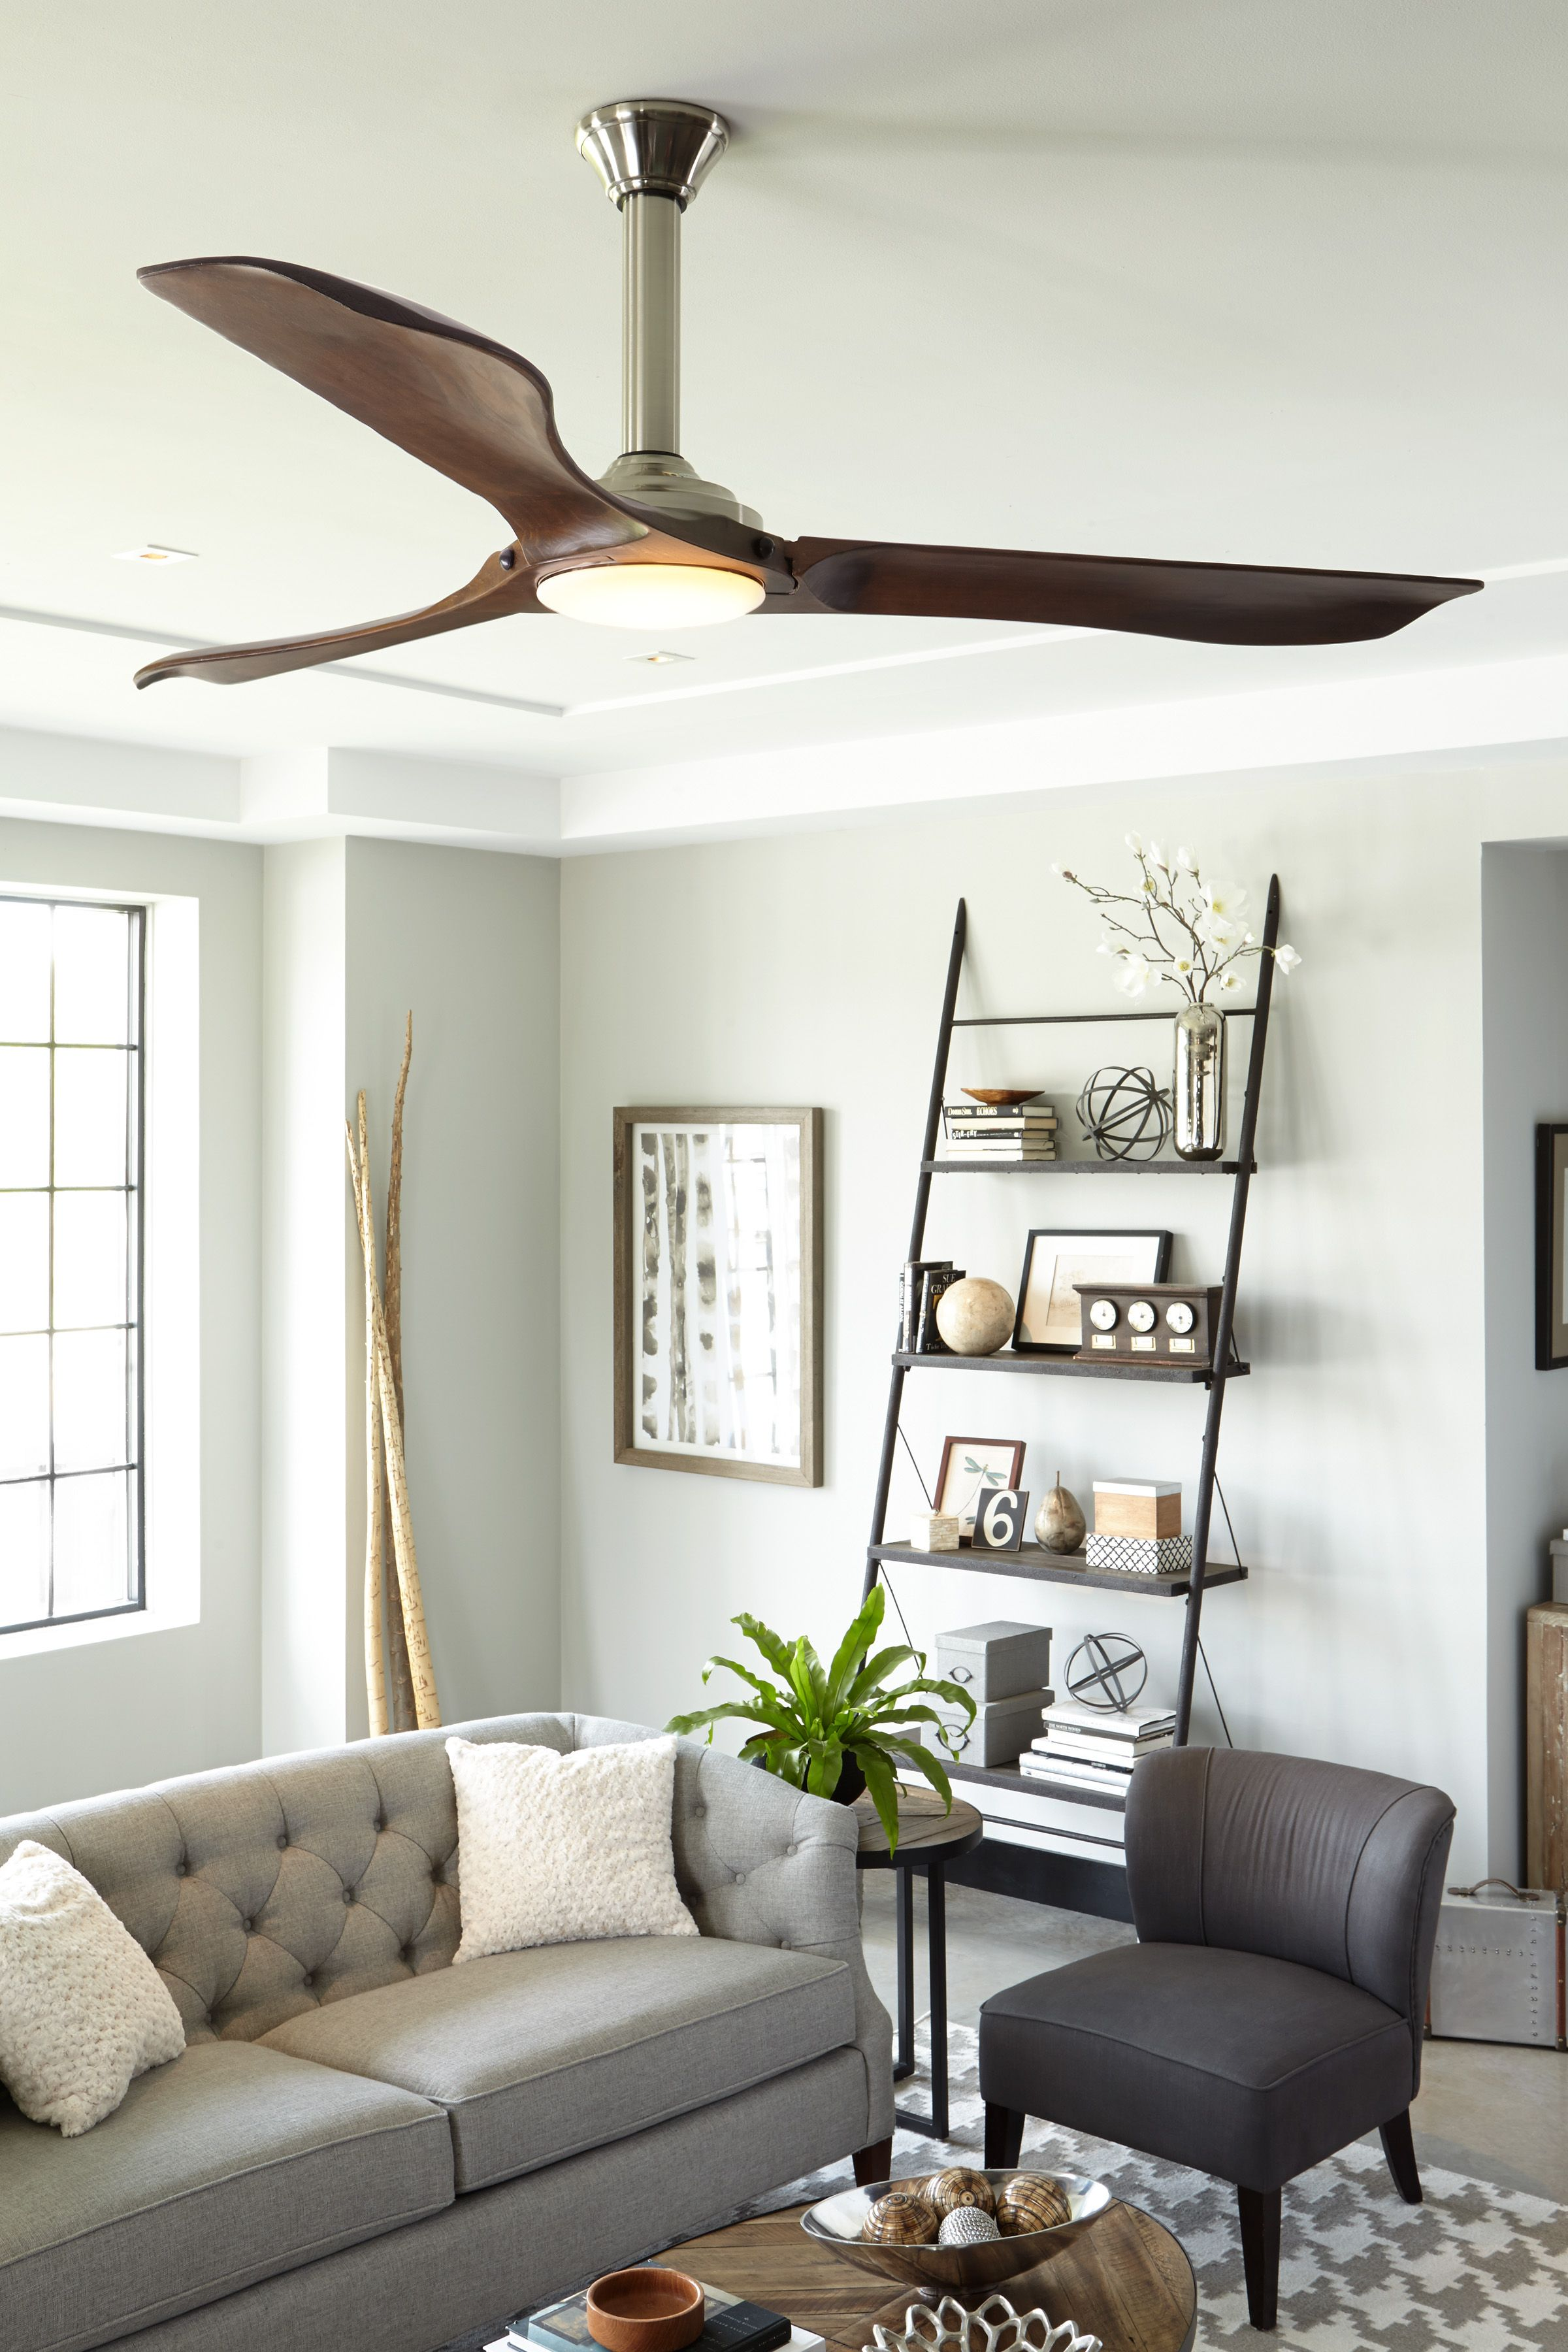 How To Choose A Ceiling Fan Size Guide Blades Amp Airflow